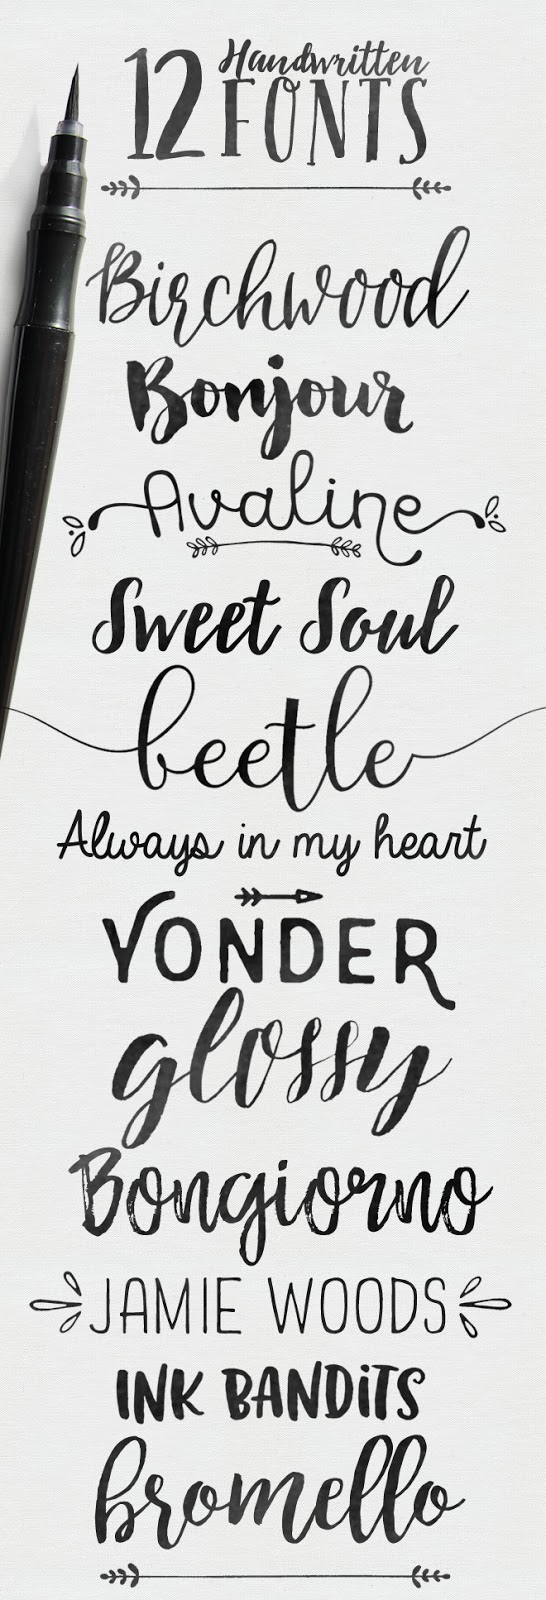 Handwritten fonts skyla design